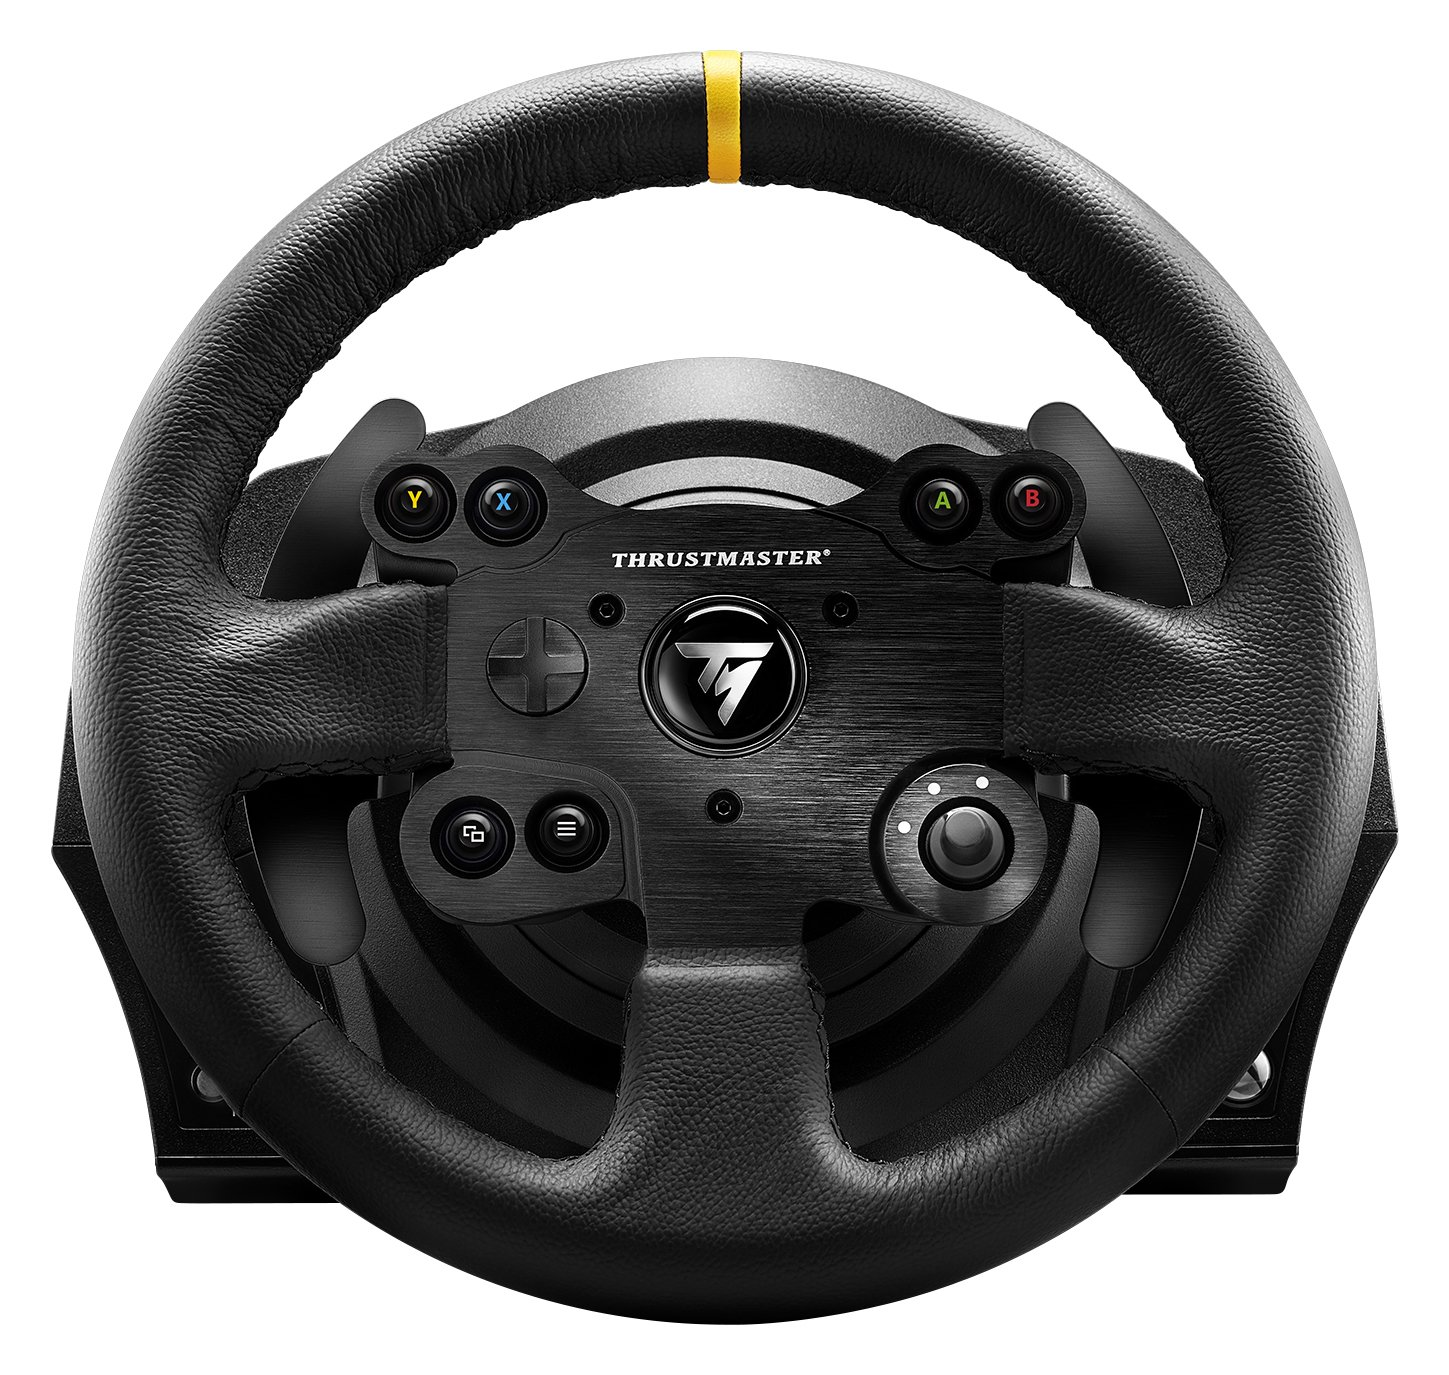 Thrustmaster TX RW Leather Edition | Racing Game Wheel |Force Feedback | PC/Xbox (B0151K6FPC) Amazon Price History, Amazon Price Tracker